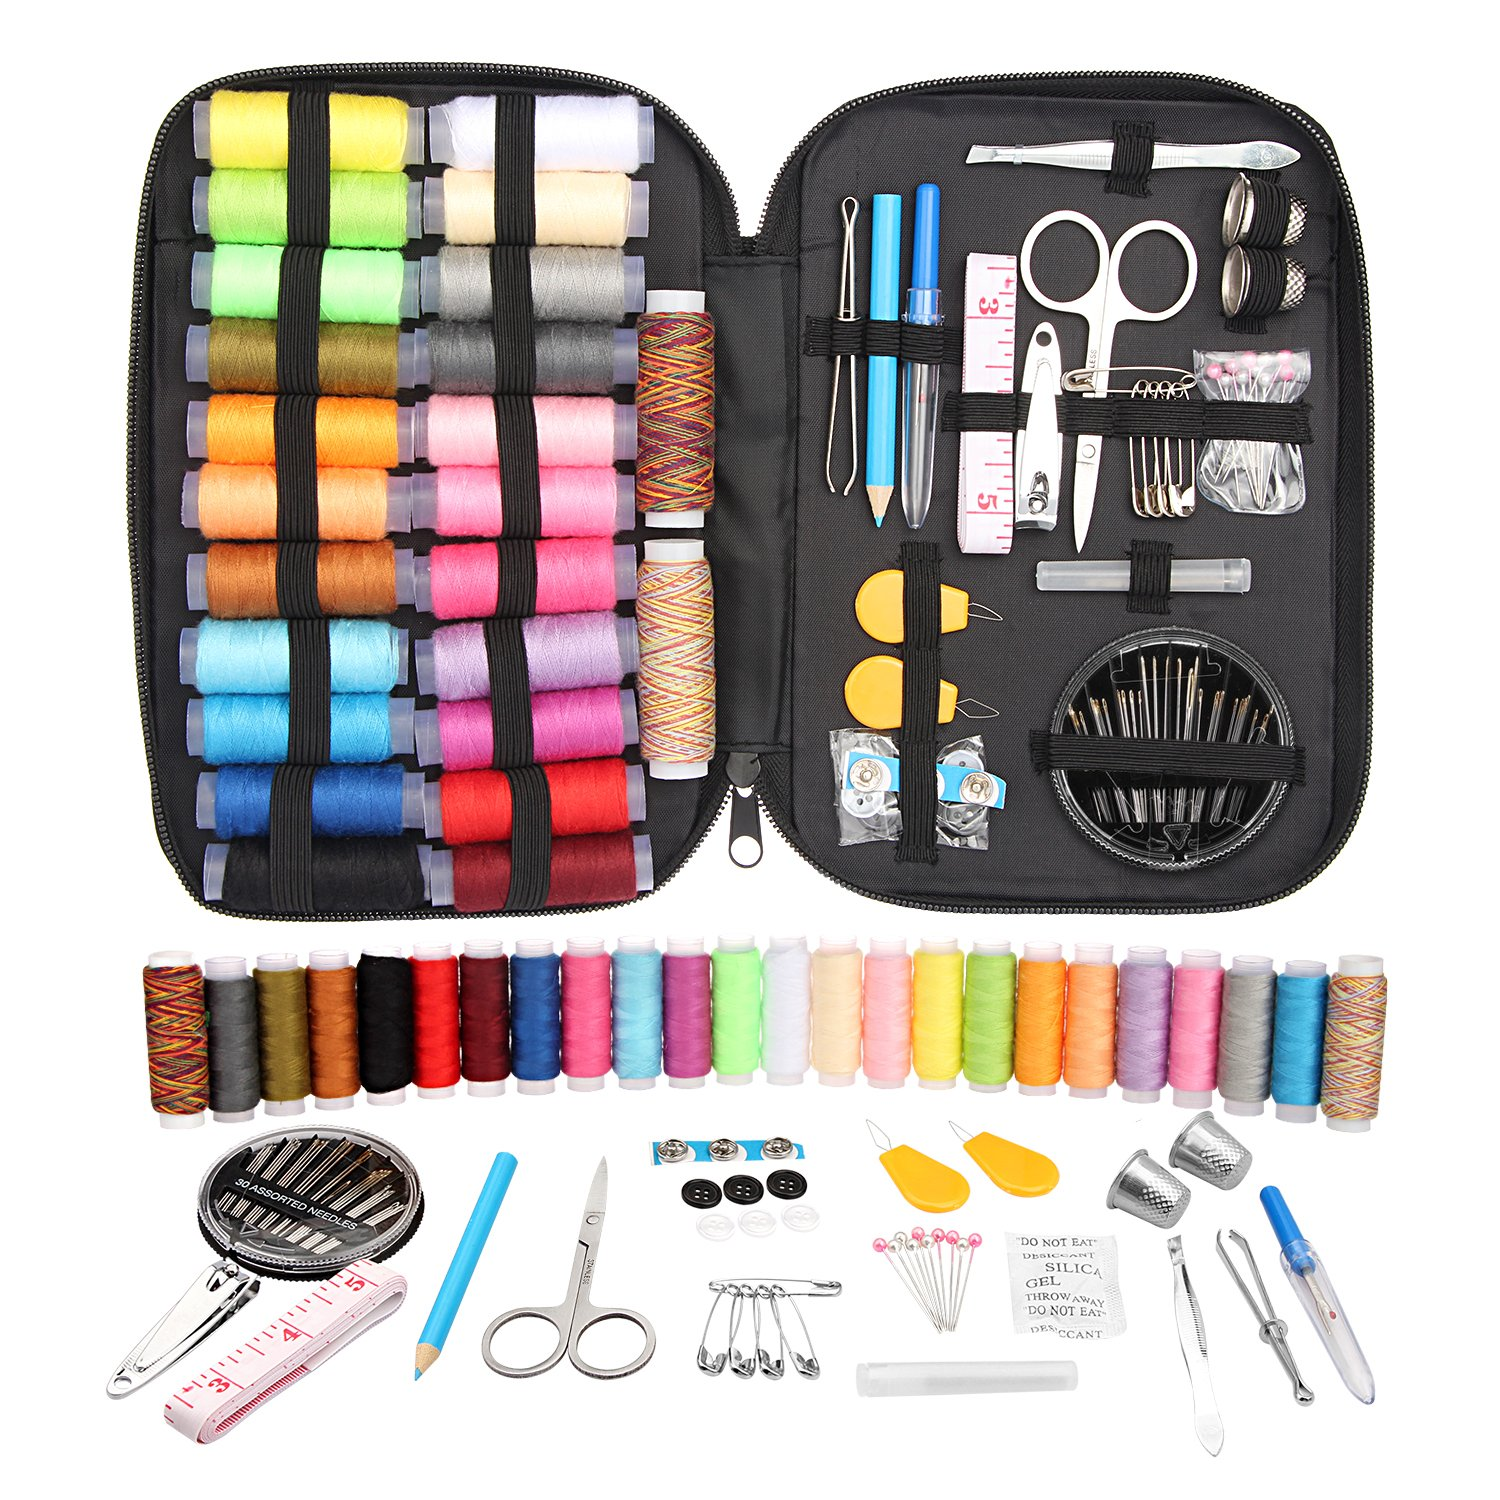 Sewing Kit with Over 96 Premium Sewing Accessories,Travel Sewing Kits With Scissors, Needles, Nail Clipper and Much More,Perfect for Beginners/Adults/Kids,Best Gift Sewing Supplies BLUEAUTY 4337012326